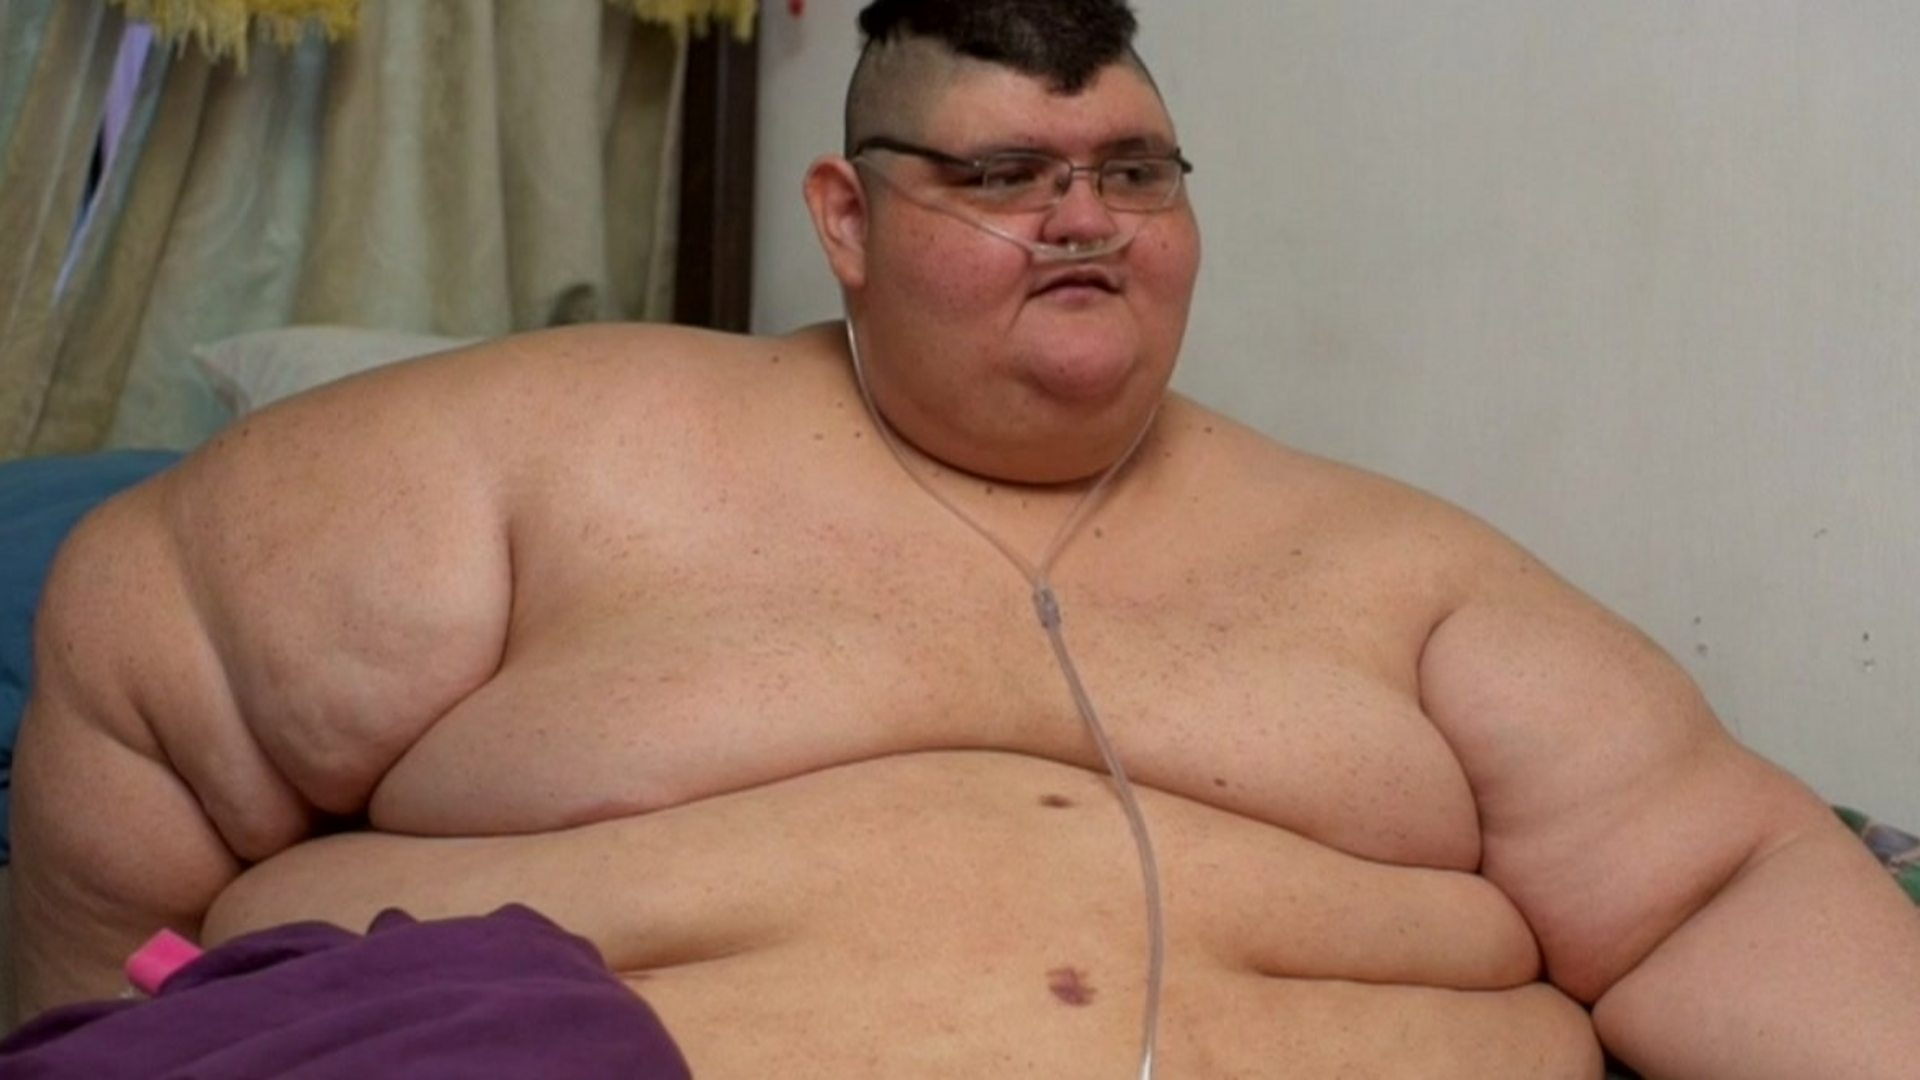 Pictures Of Really Fat Men